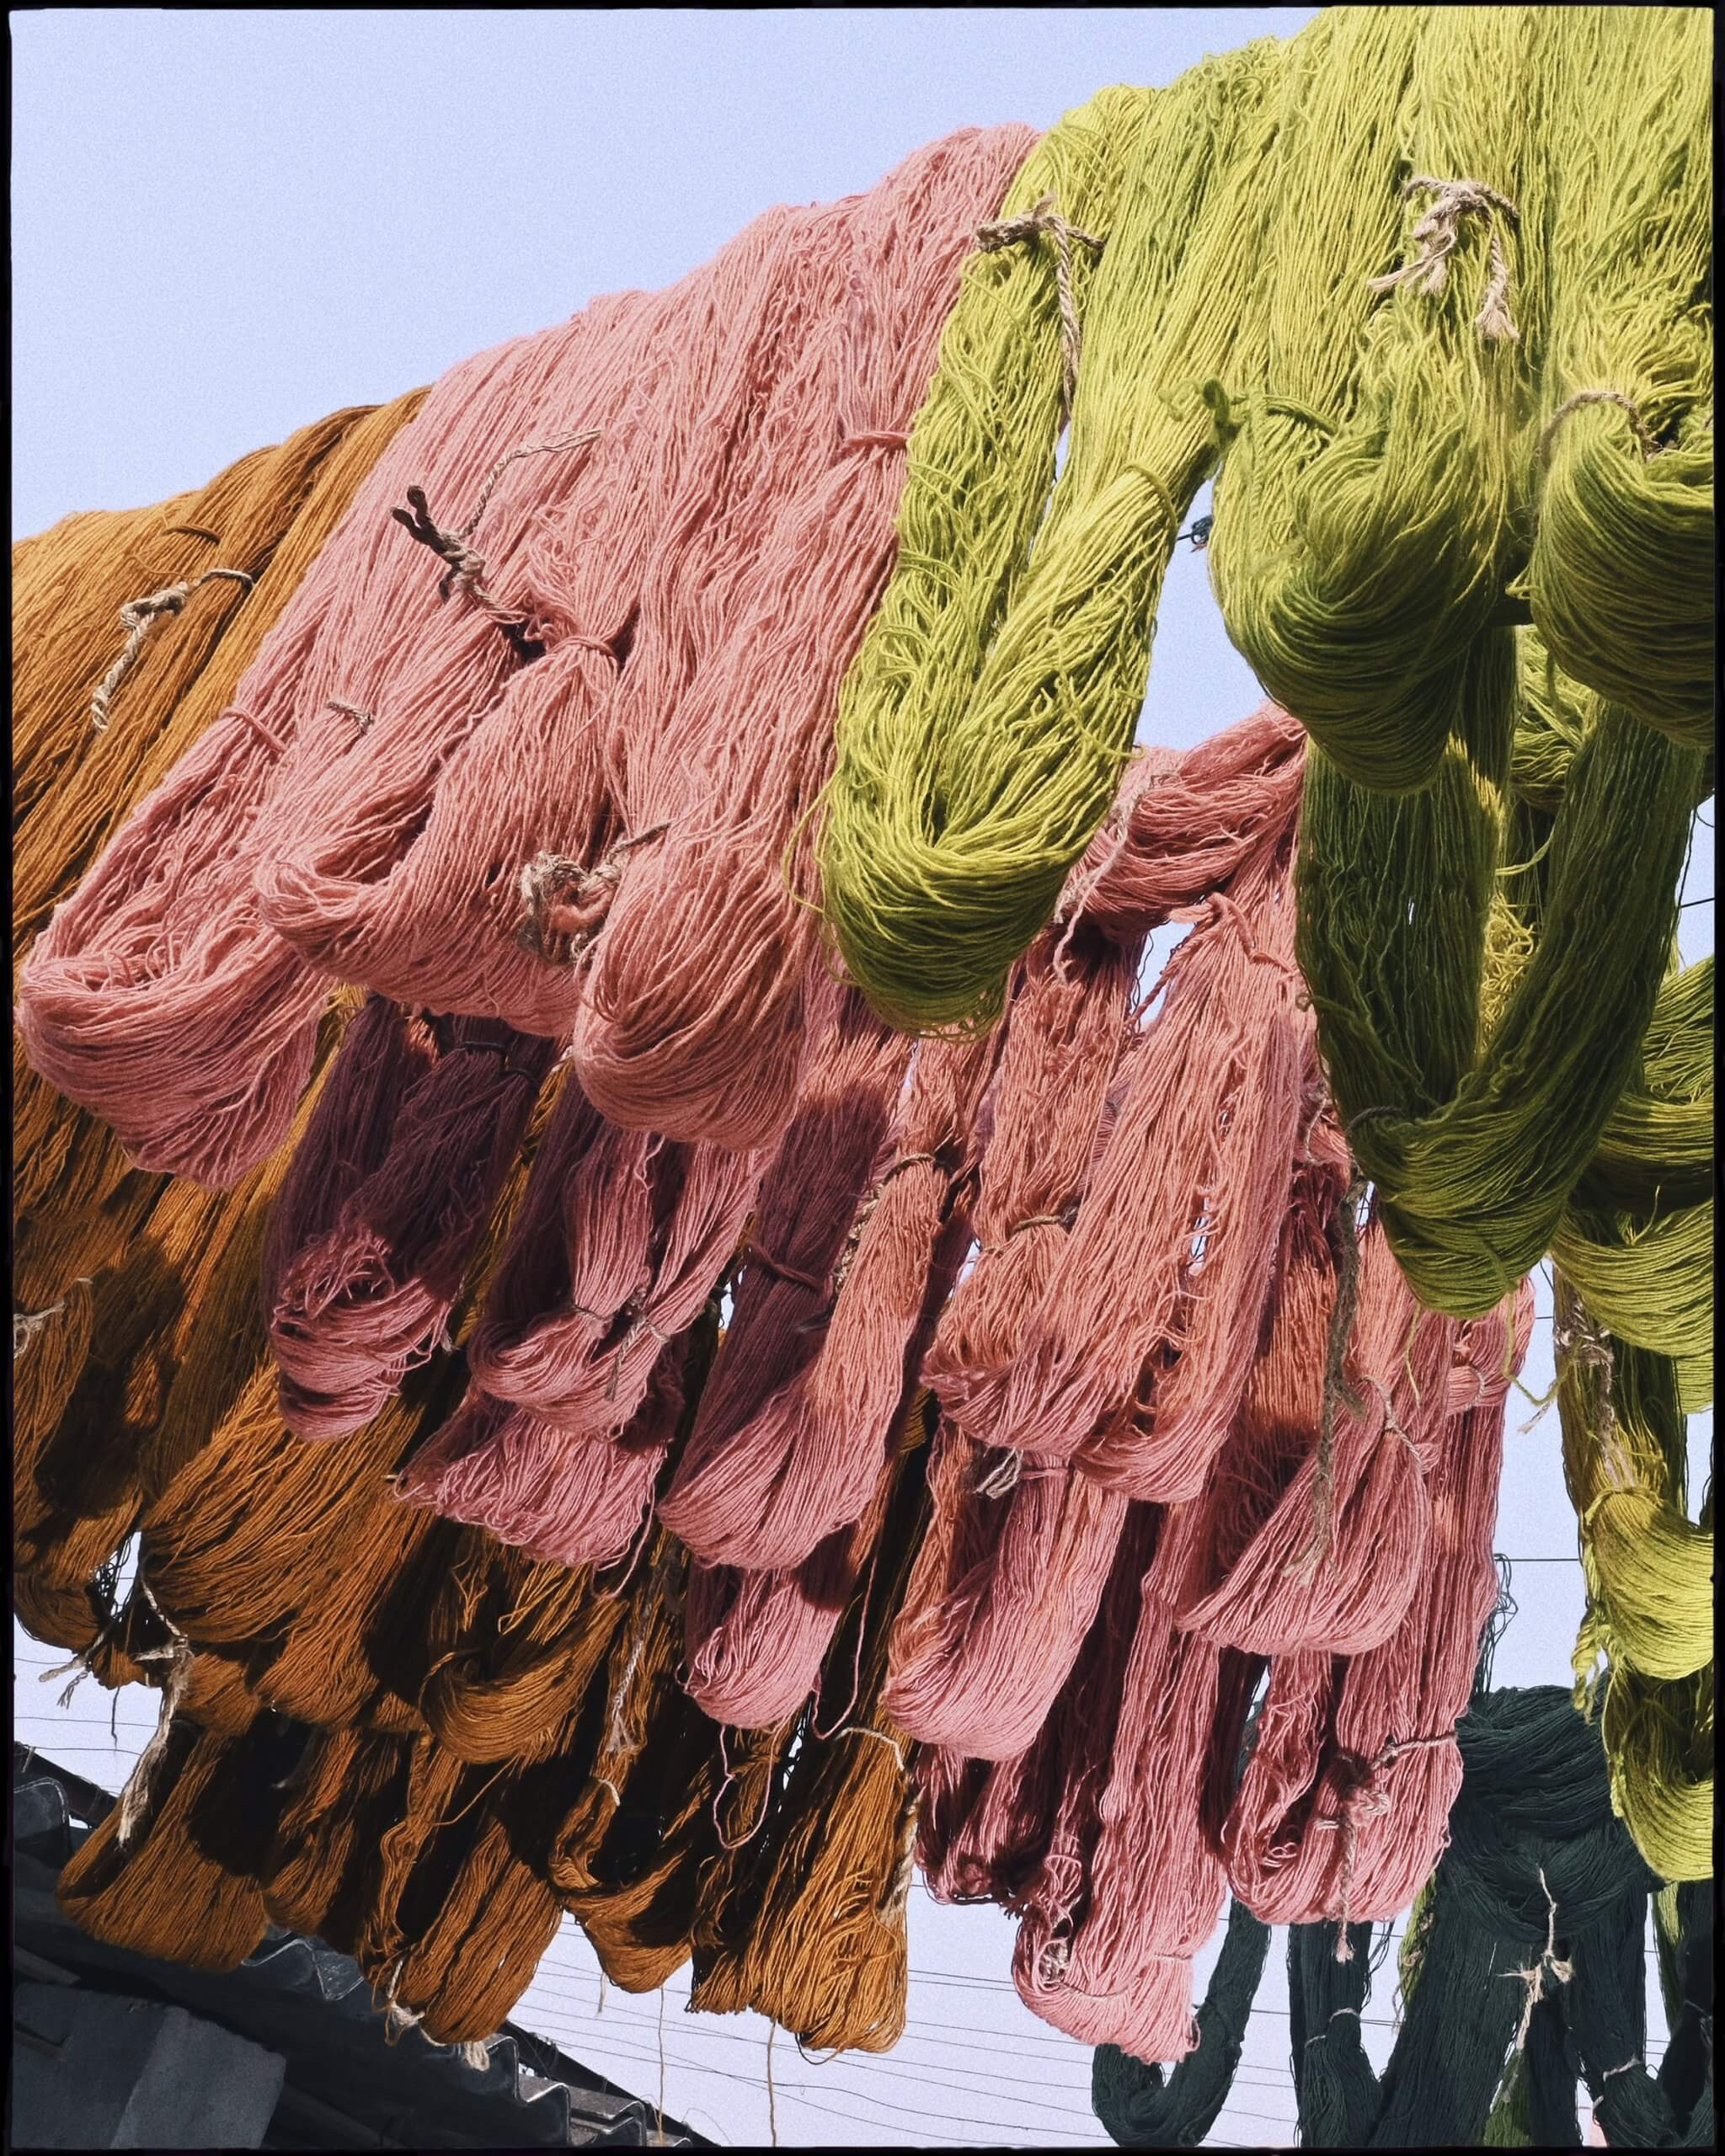 Dyed wool hanging to dry.